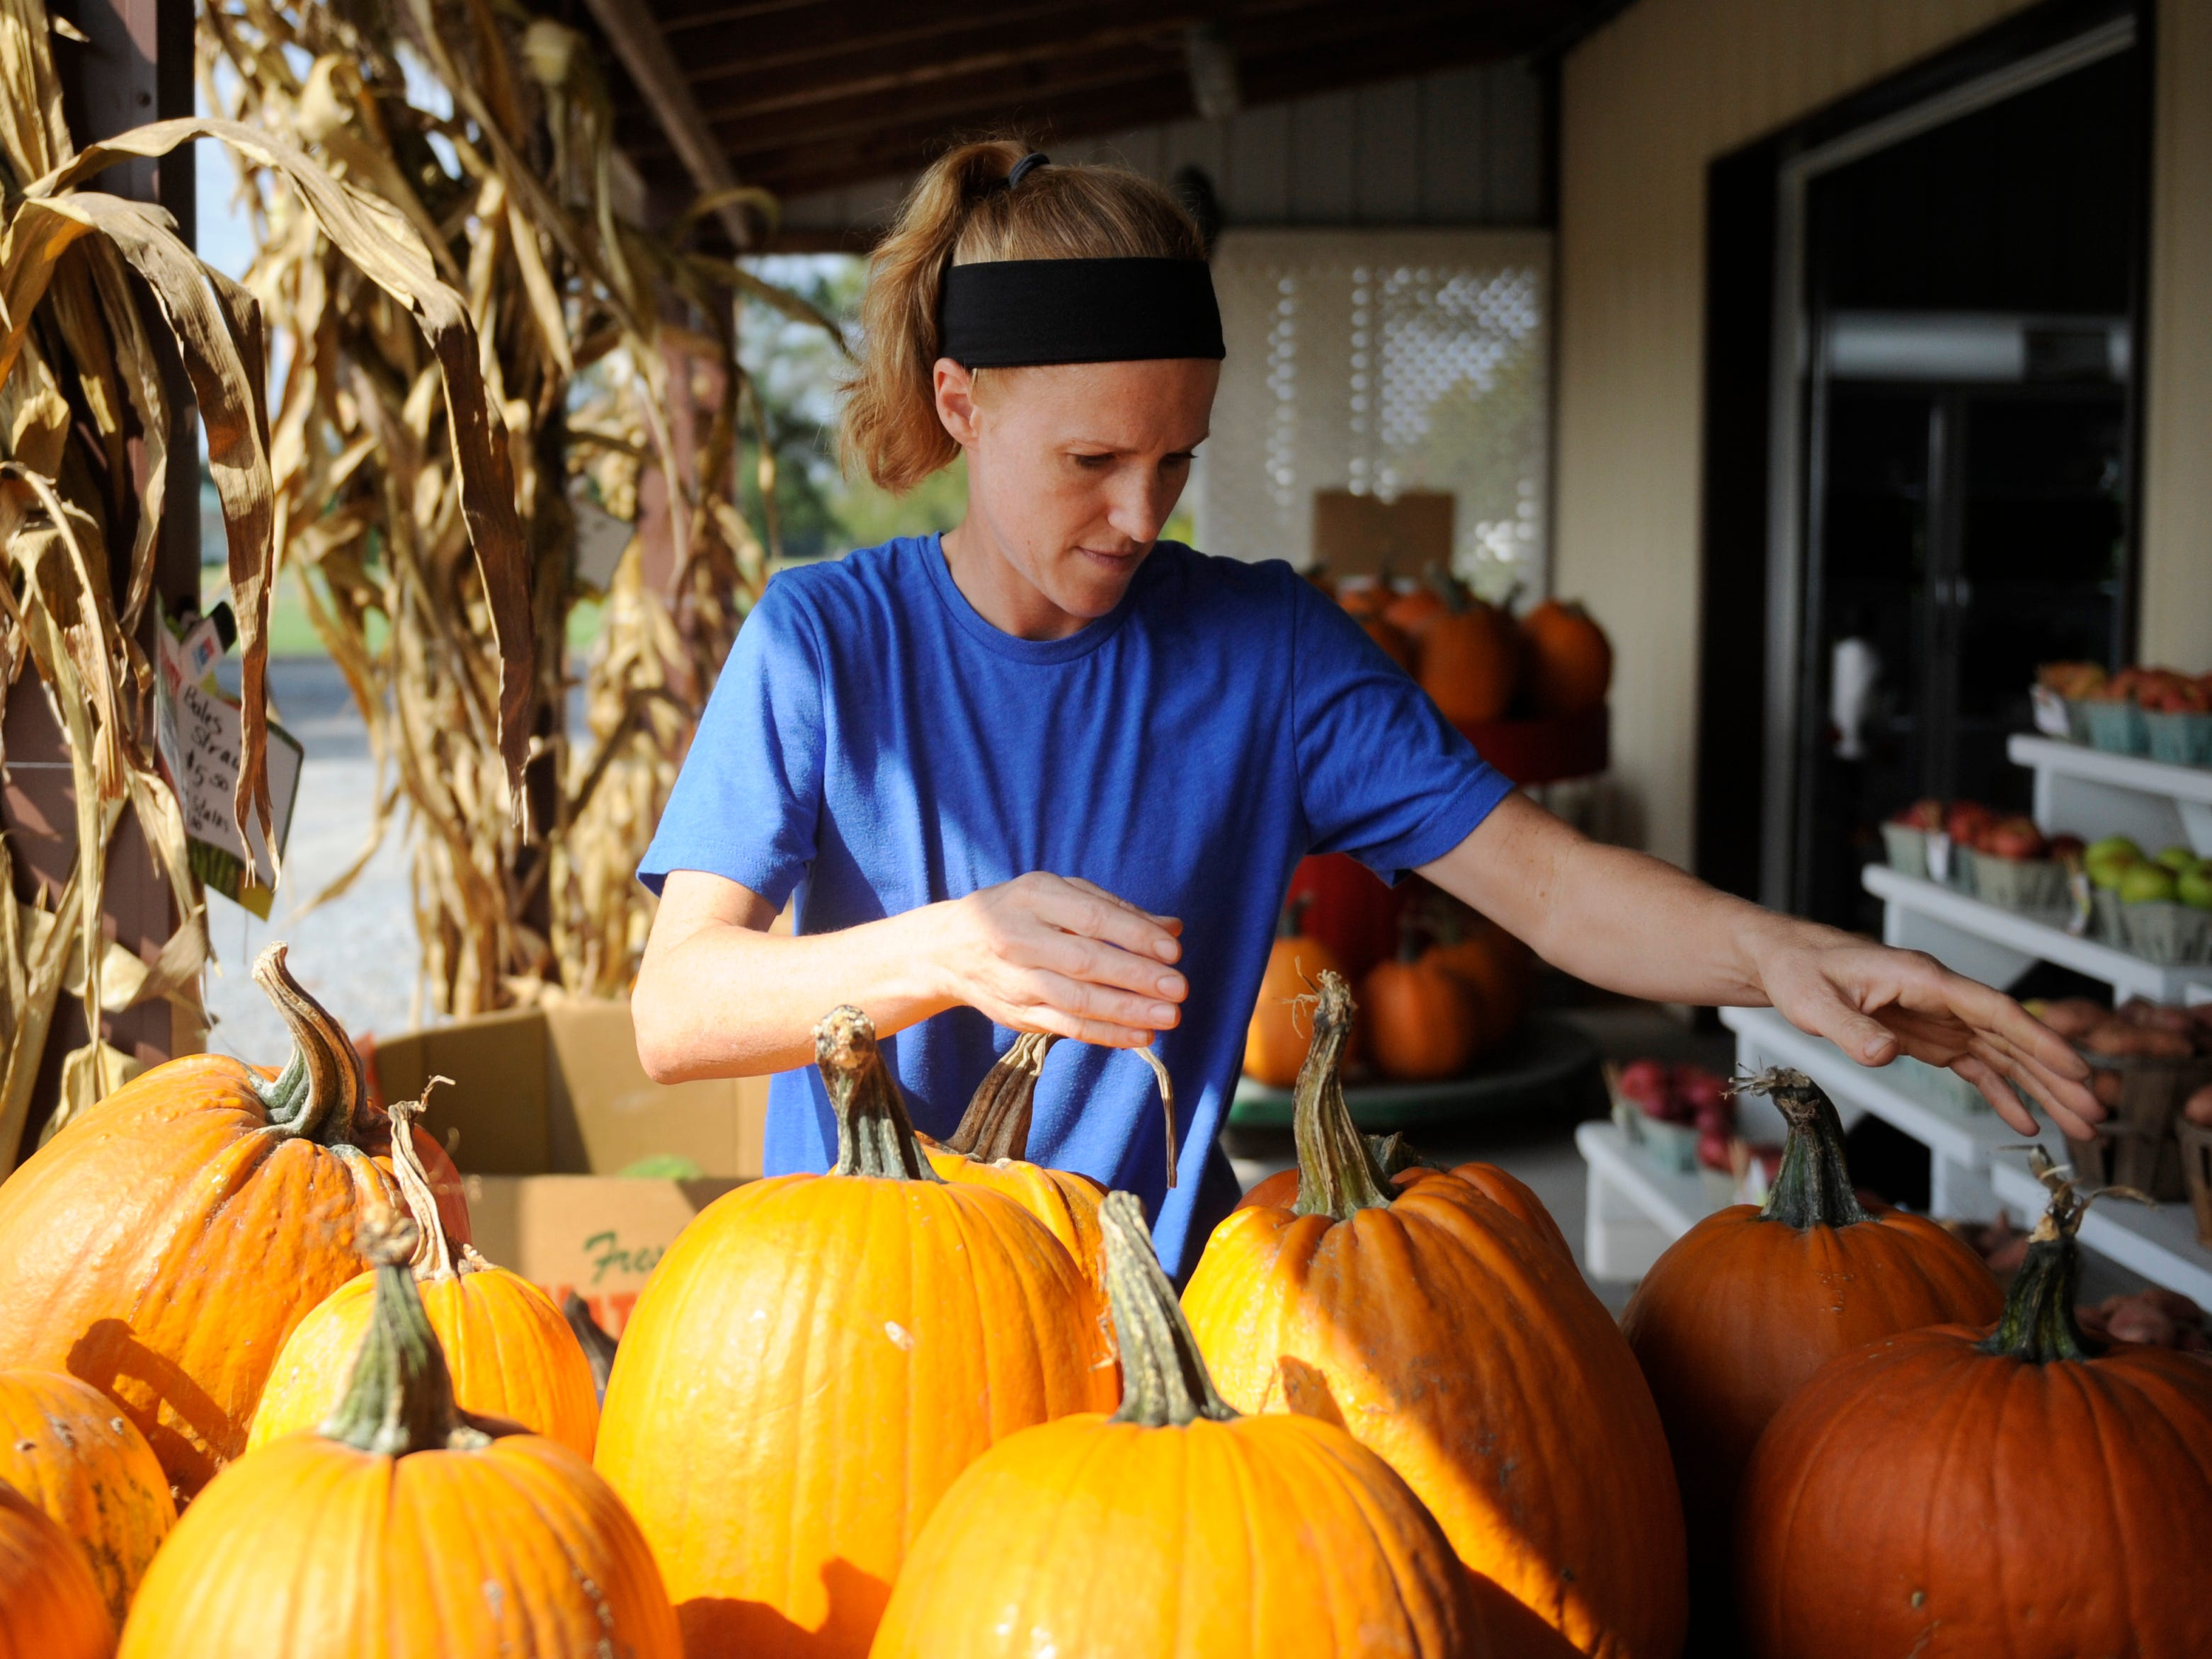 Dena Cifaloglio, market manager at Muzzarelli Farms, sorts out pumpkins on display at the East Oak Road location on Thursday, October 4, 2018.